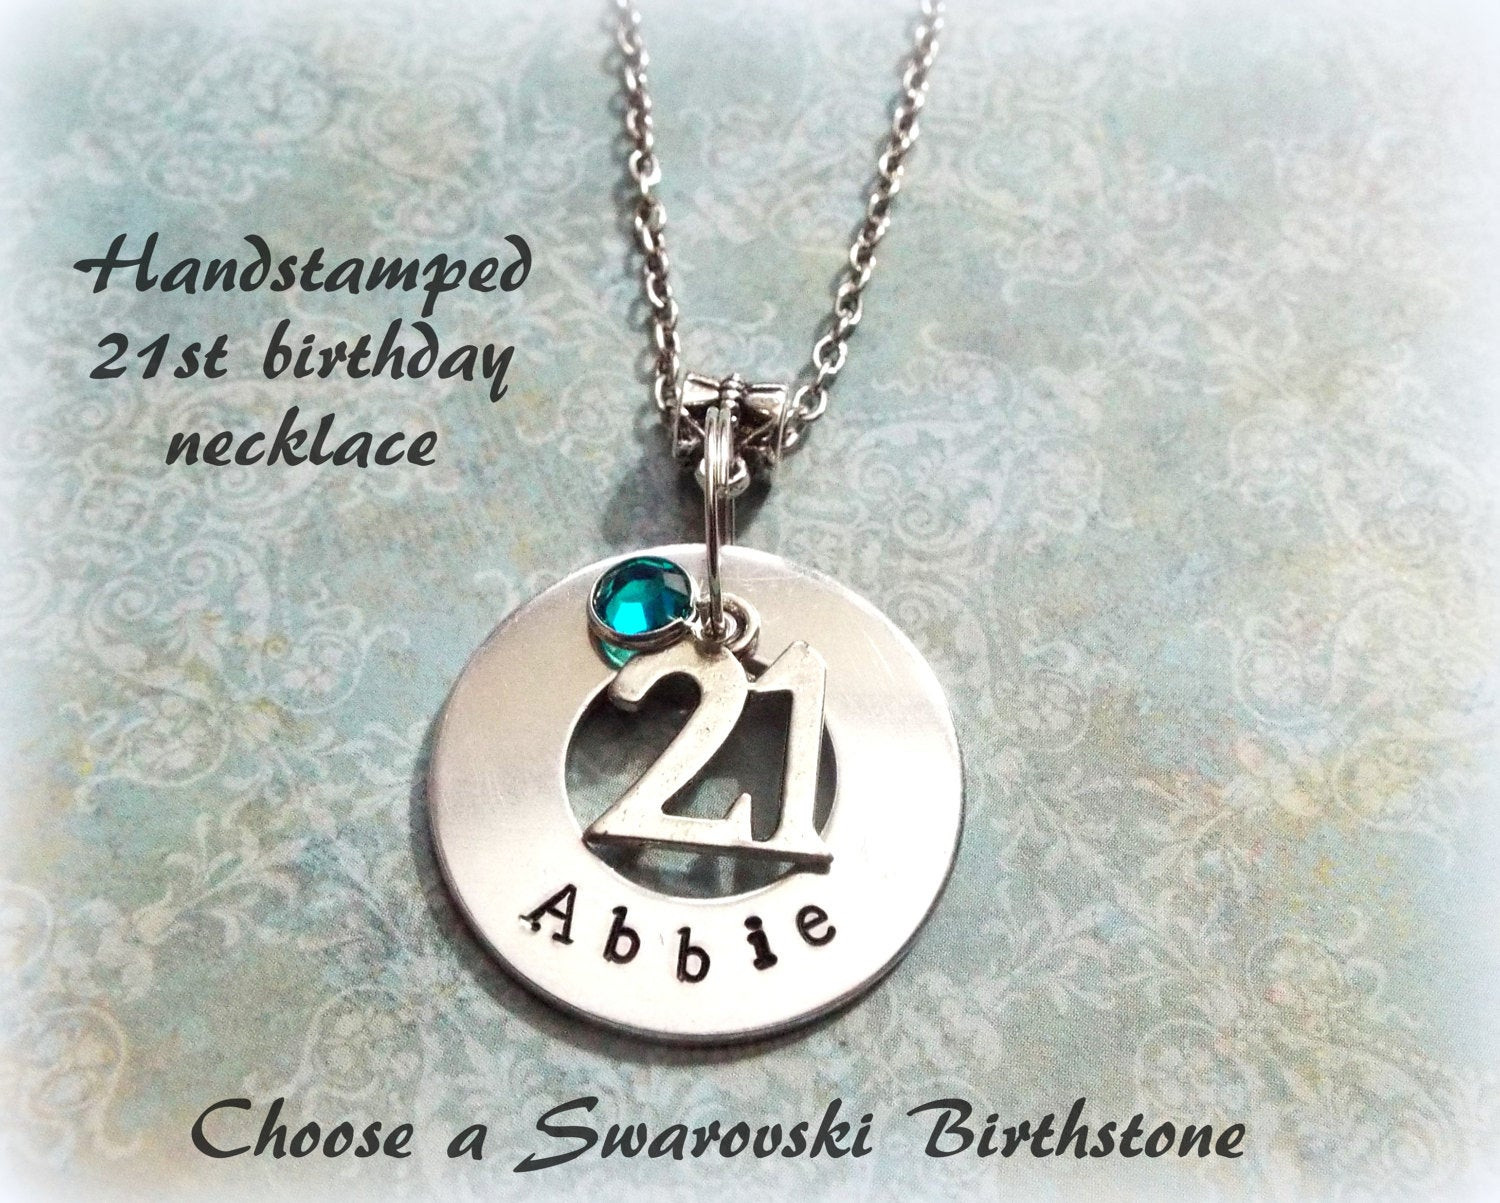 Best ideas about Custom Birthday Gifts . Save or Pin 21st Birthday Gift Personalized Handstamped Gift for 21st Now.